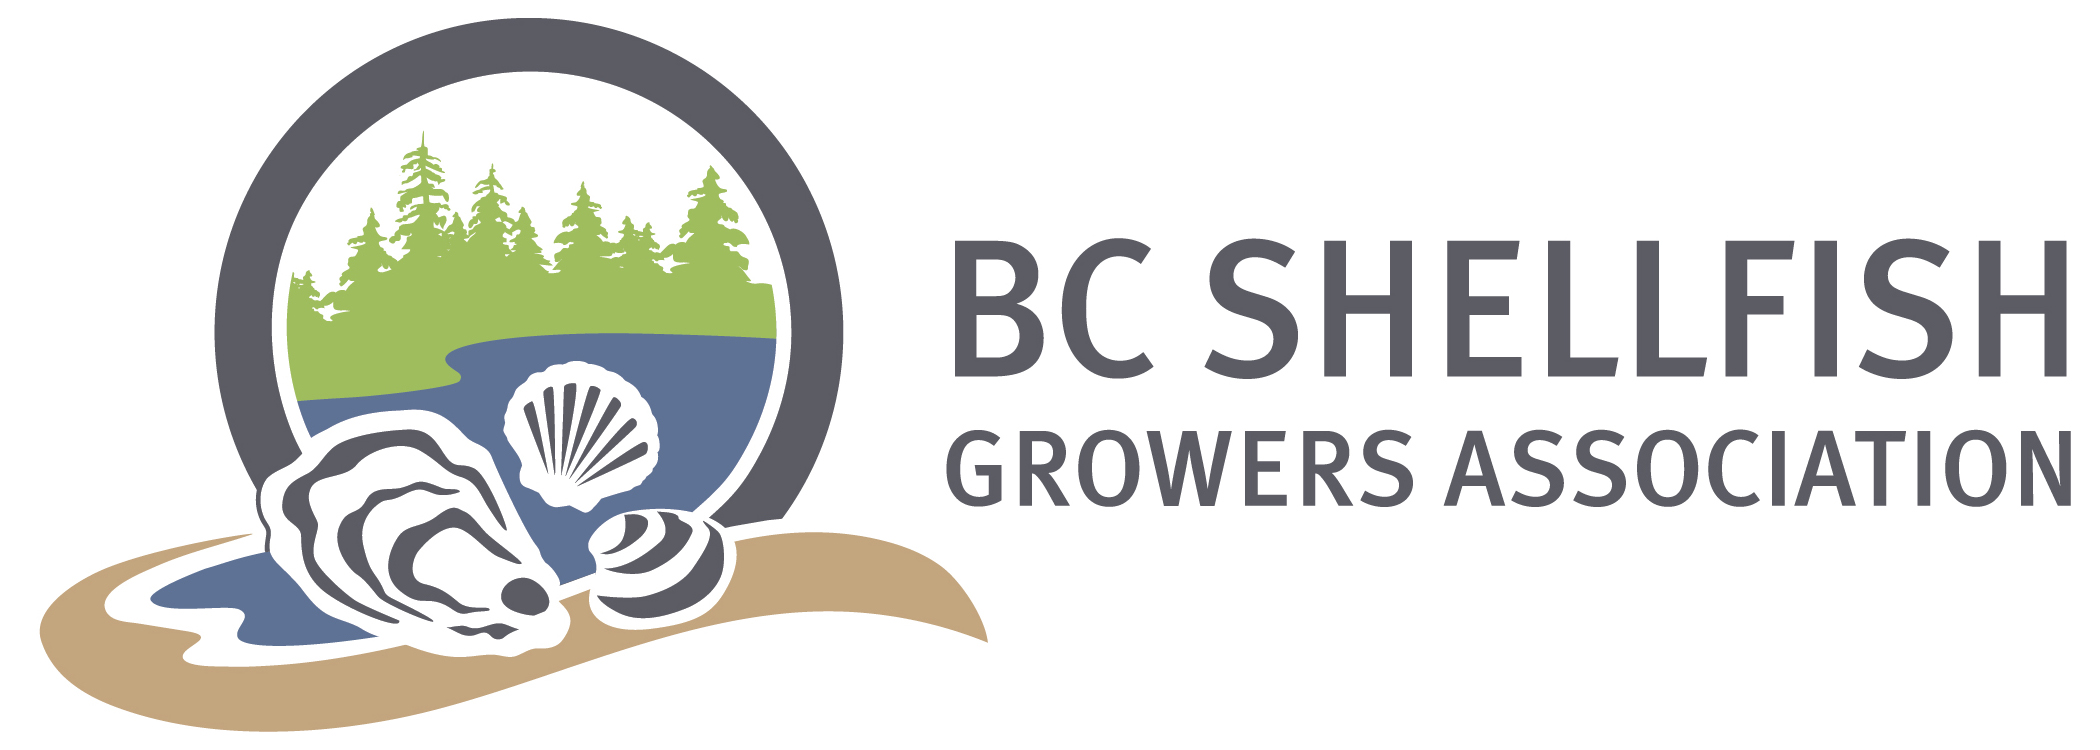 BC Shellfish Grower's Association